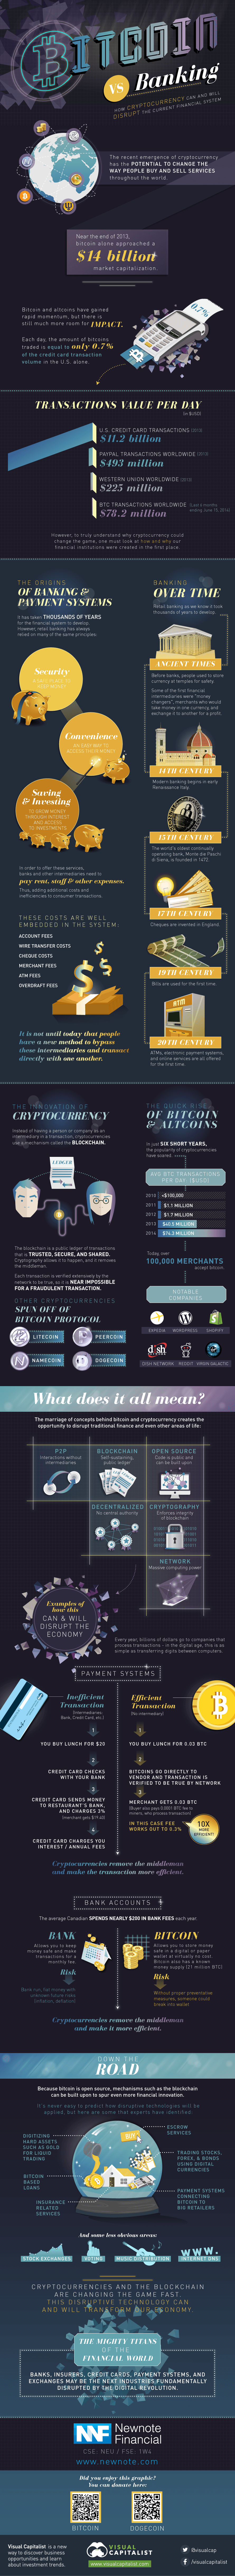 bitcoin-disrupt-financial-system-infographic-3